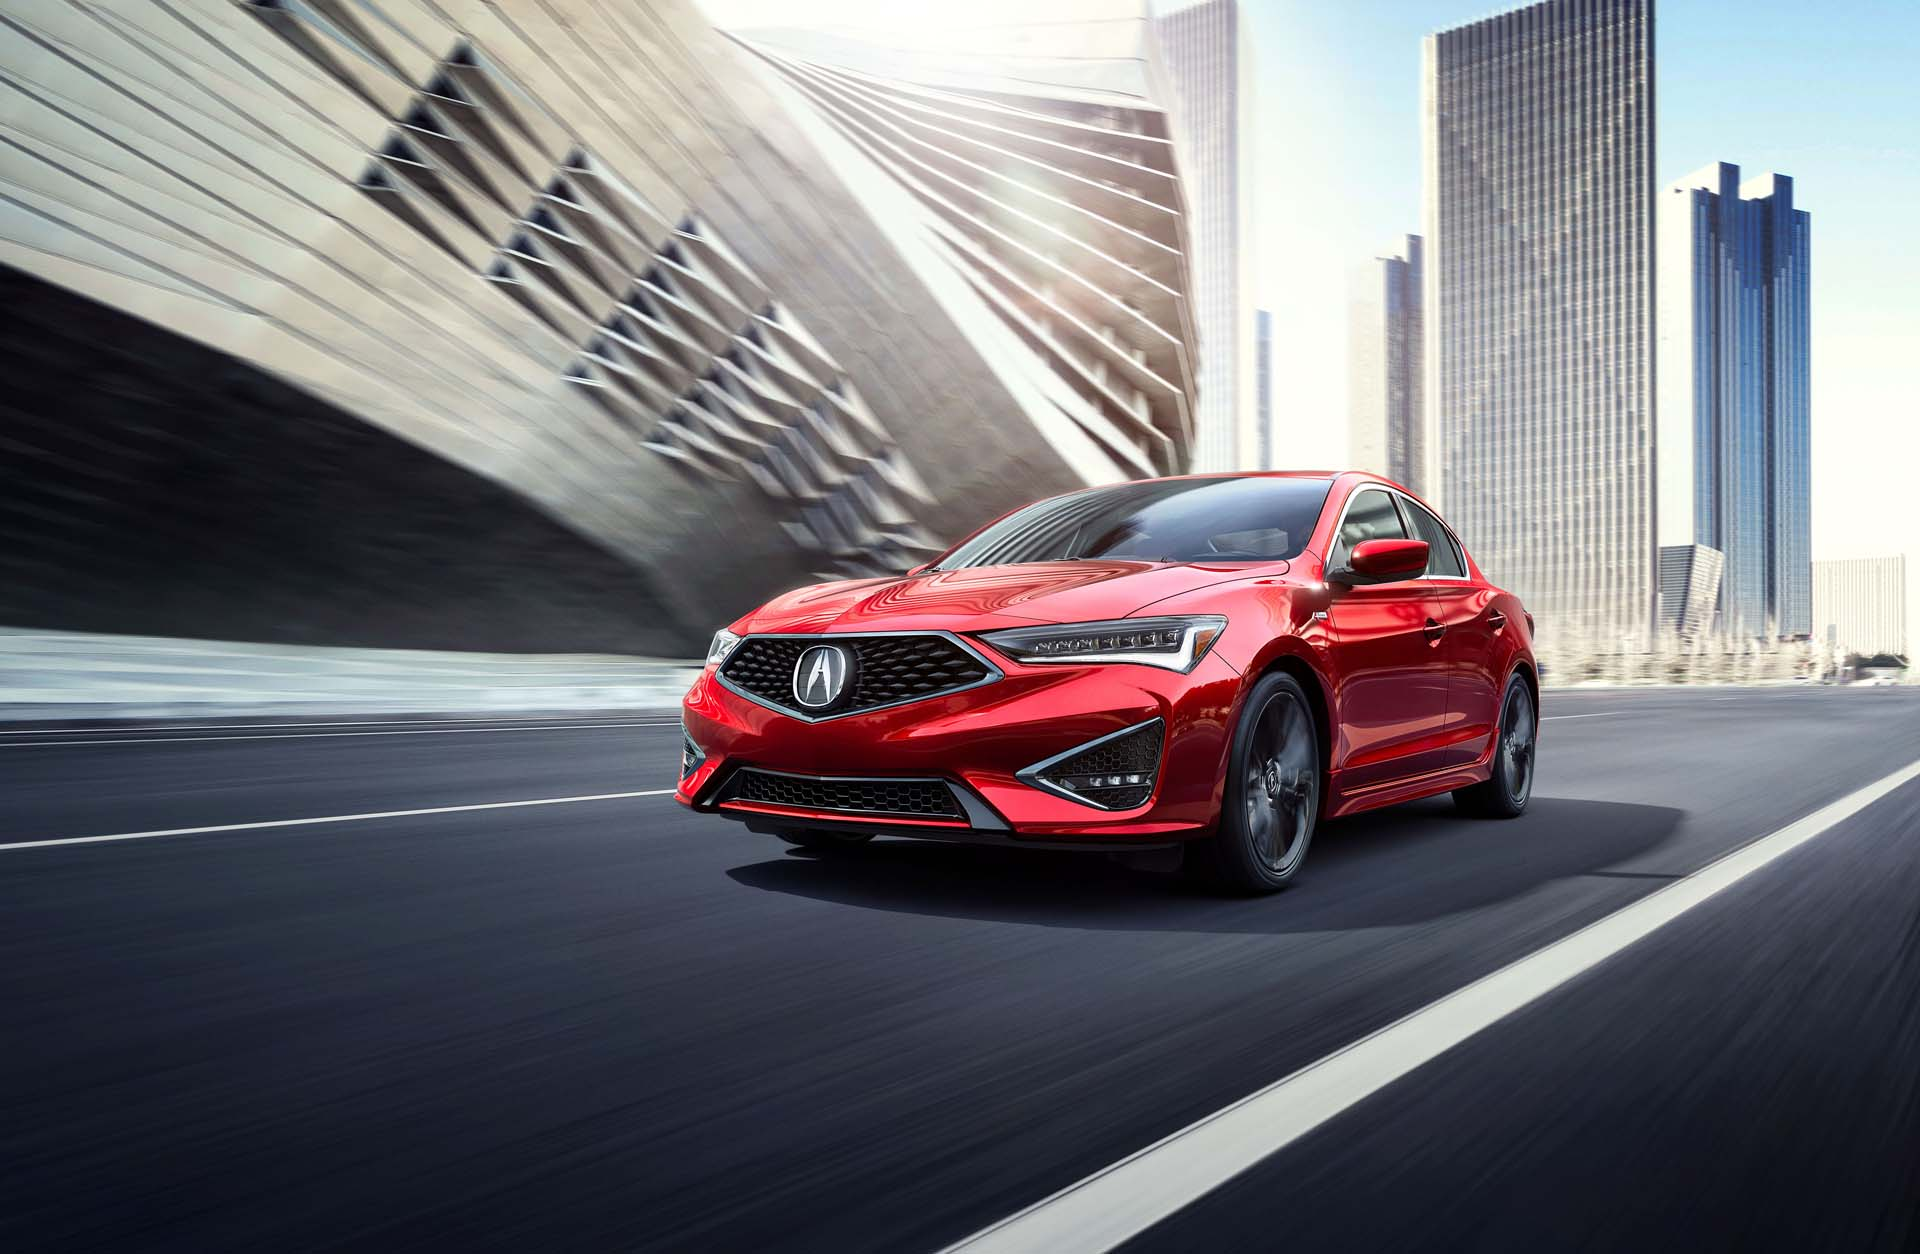 2019 Acura Ilx Brings Brand S New Design Language 2 200